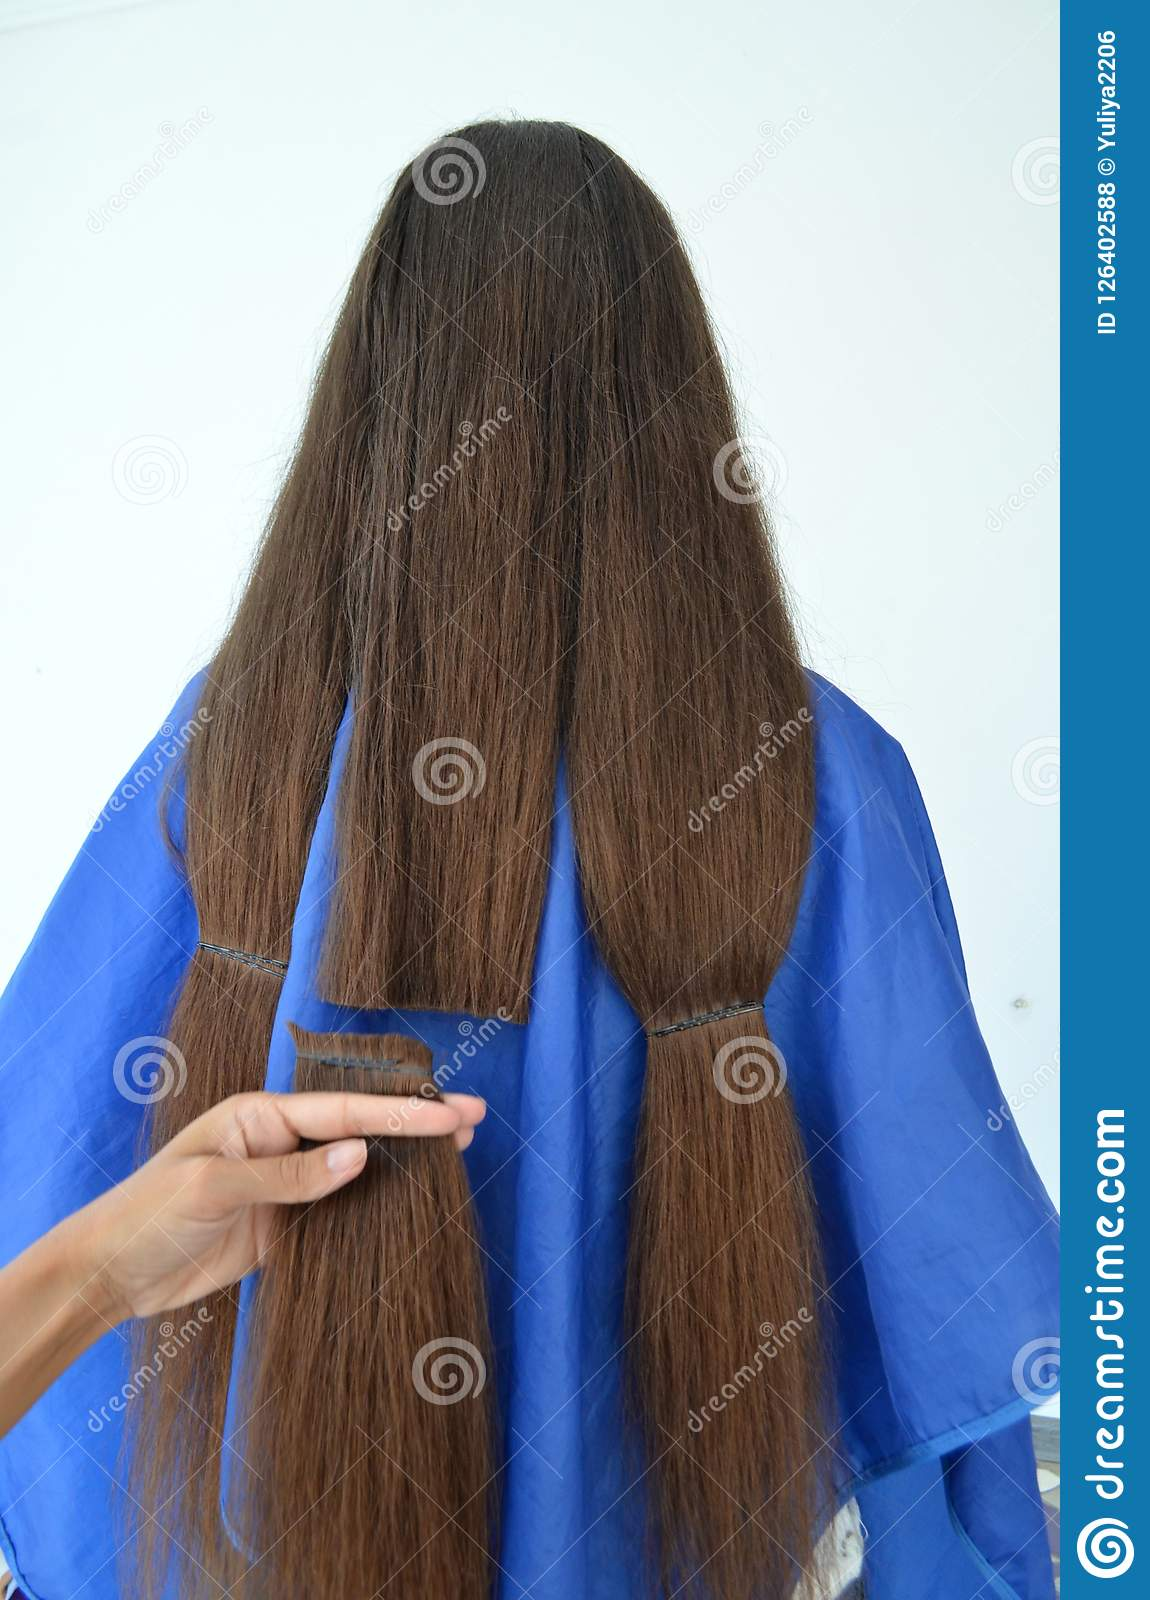 Haircut on really long hair